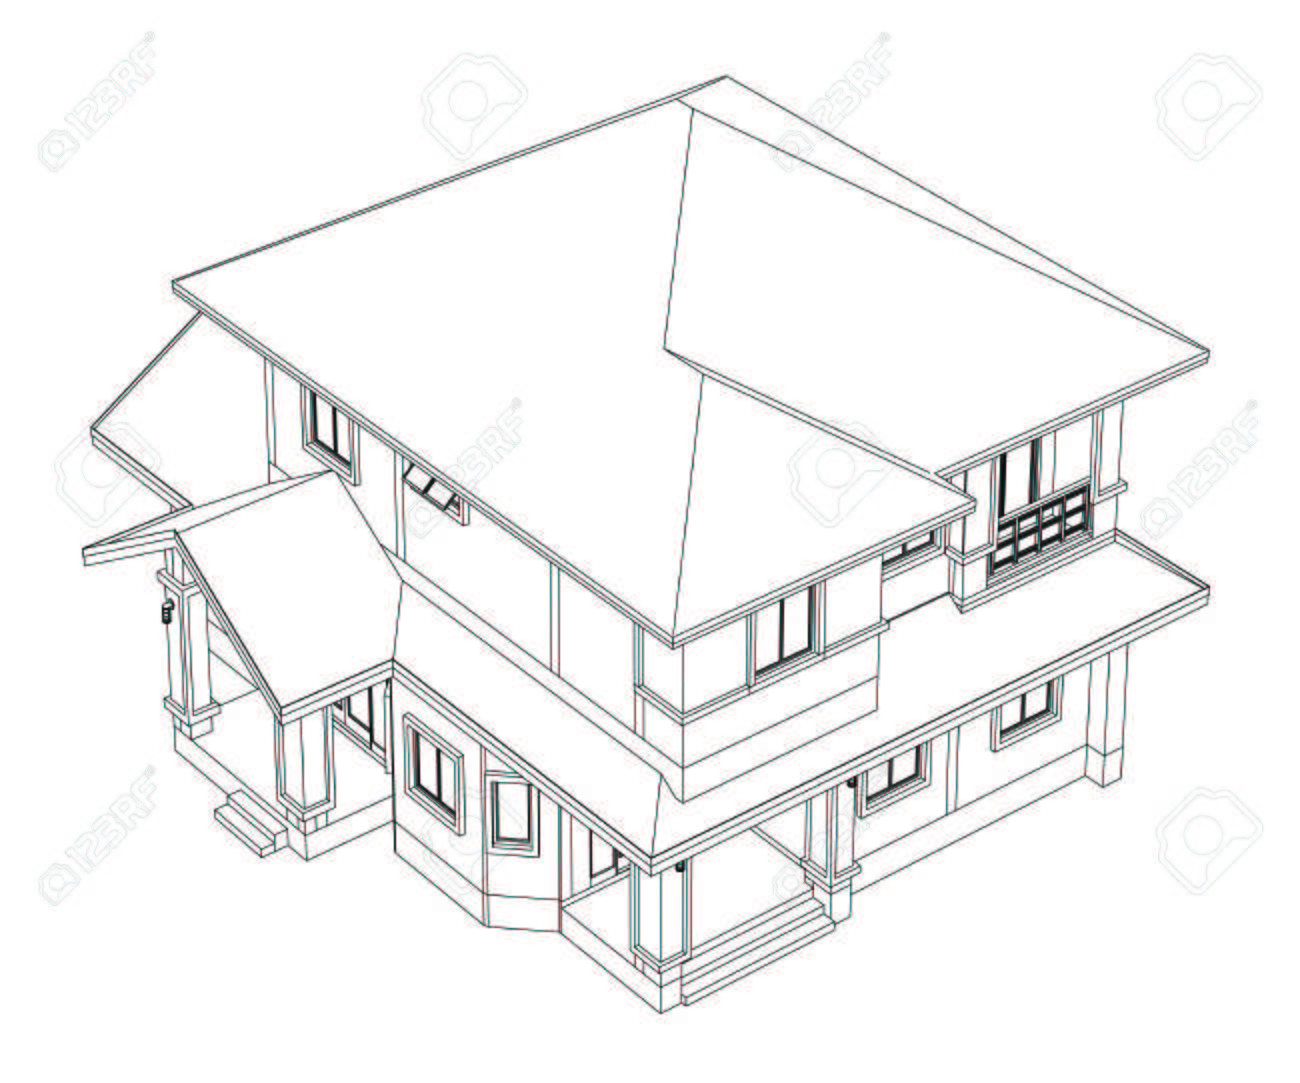 Colour Line Art Design : Drawings design house no colour stock photo picture and royalty